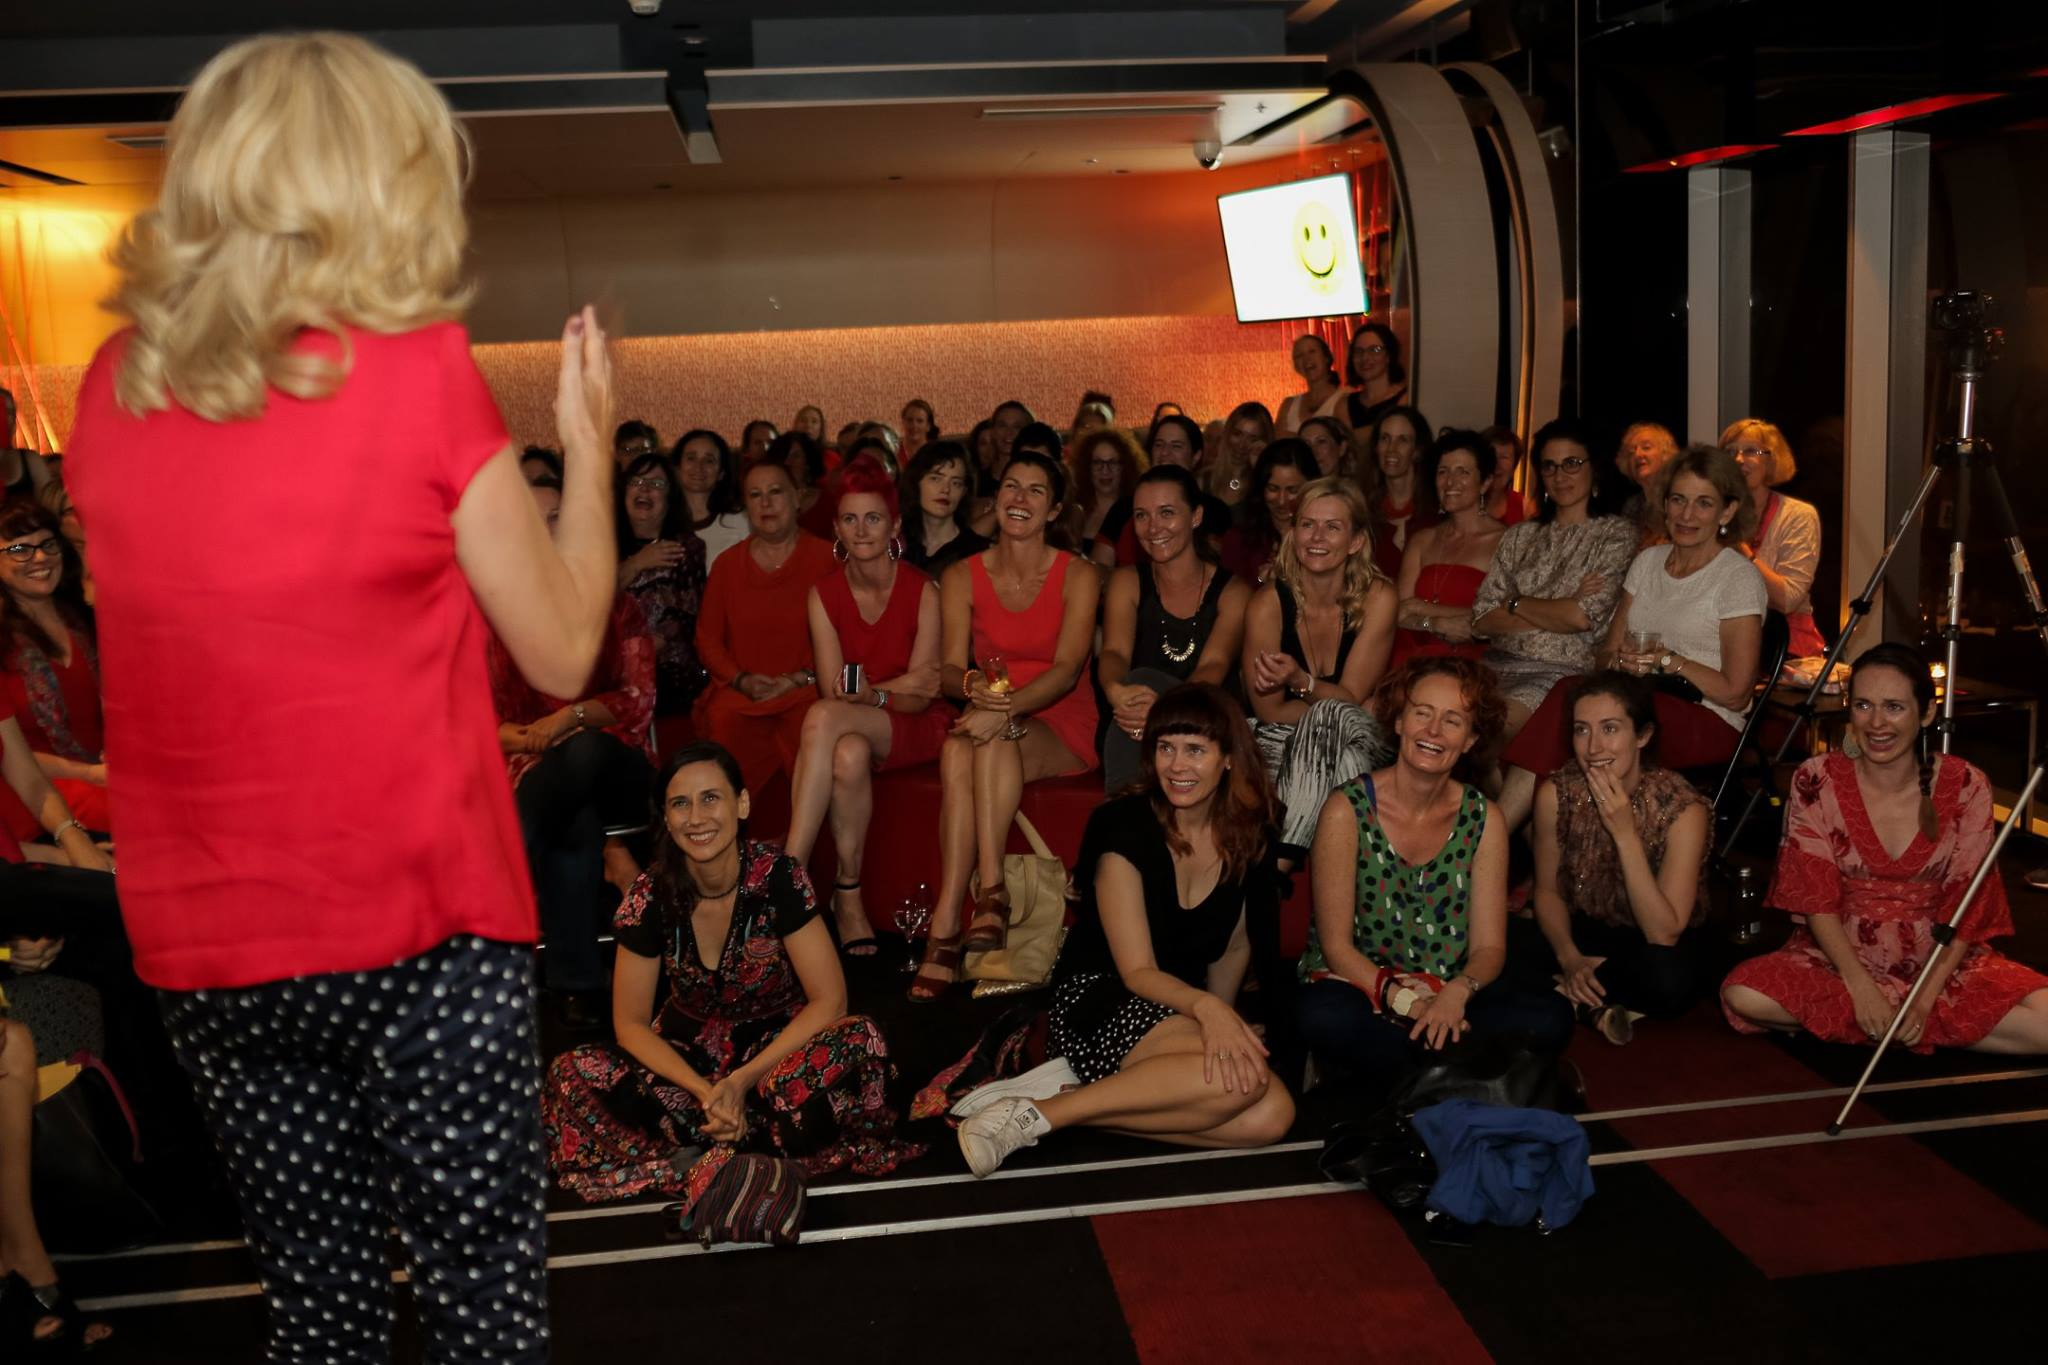 Comedienne and author Jean Kittson had the whole room in fits of hysterics